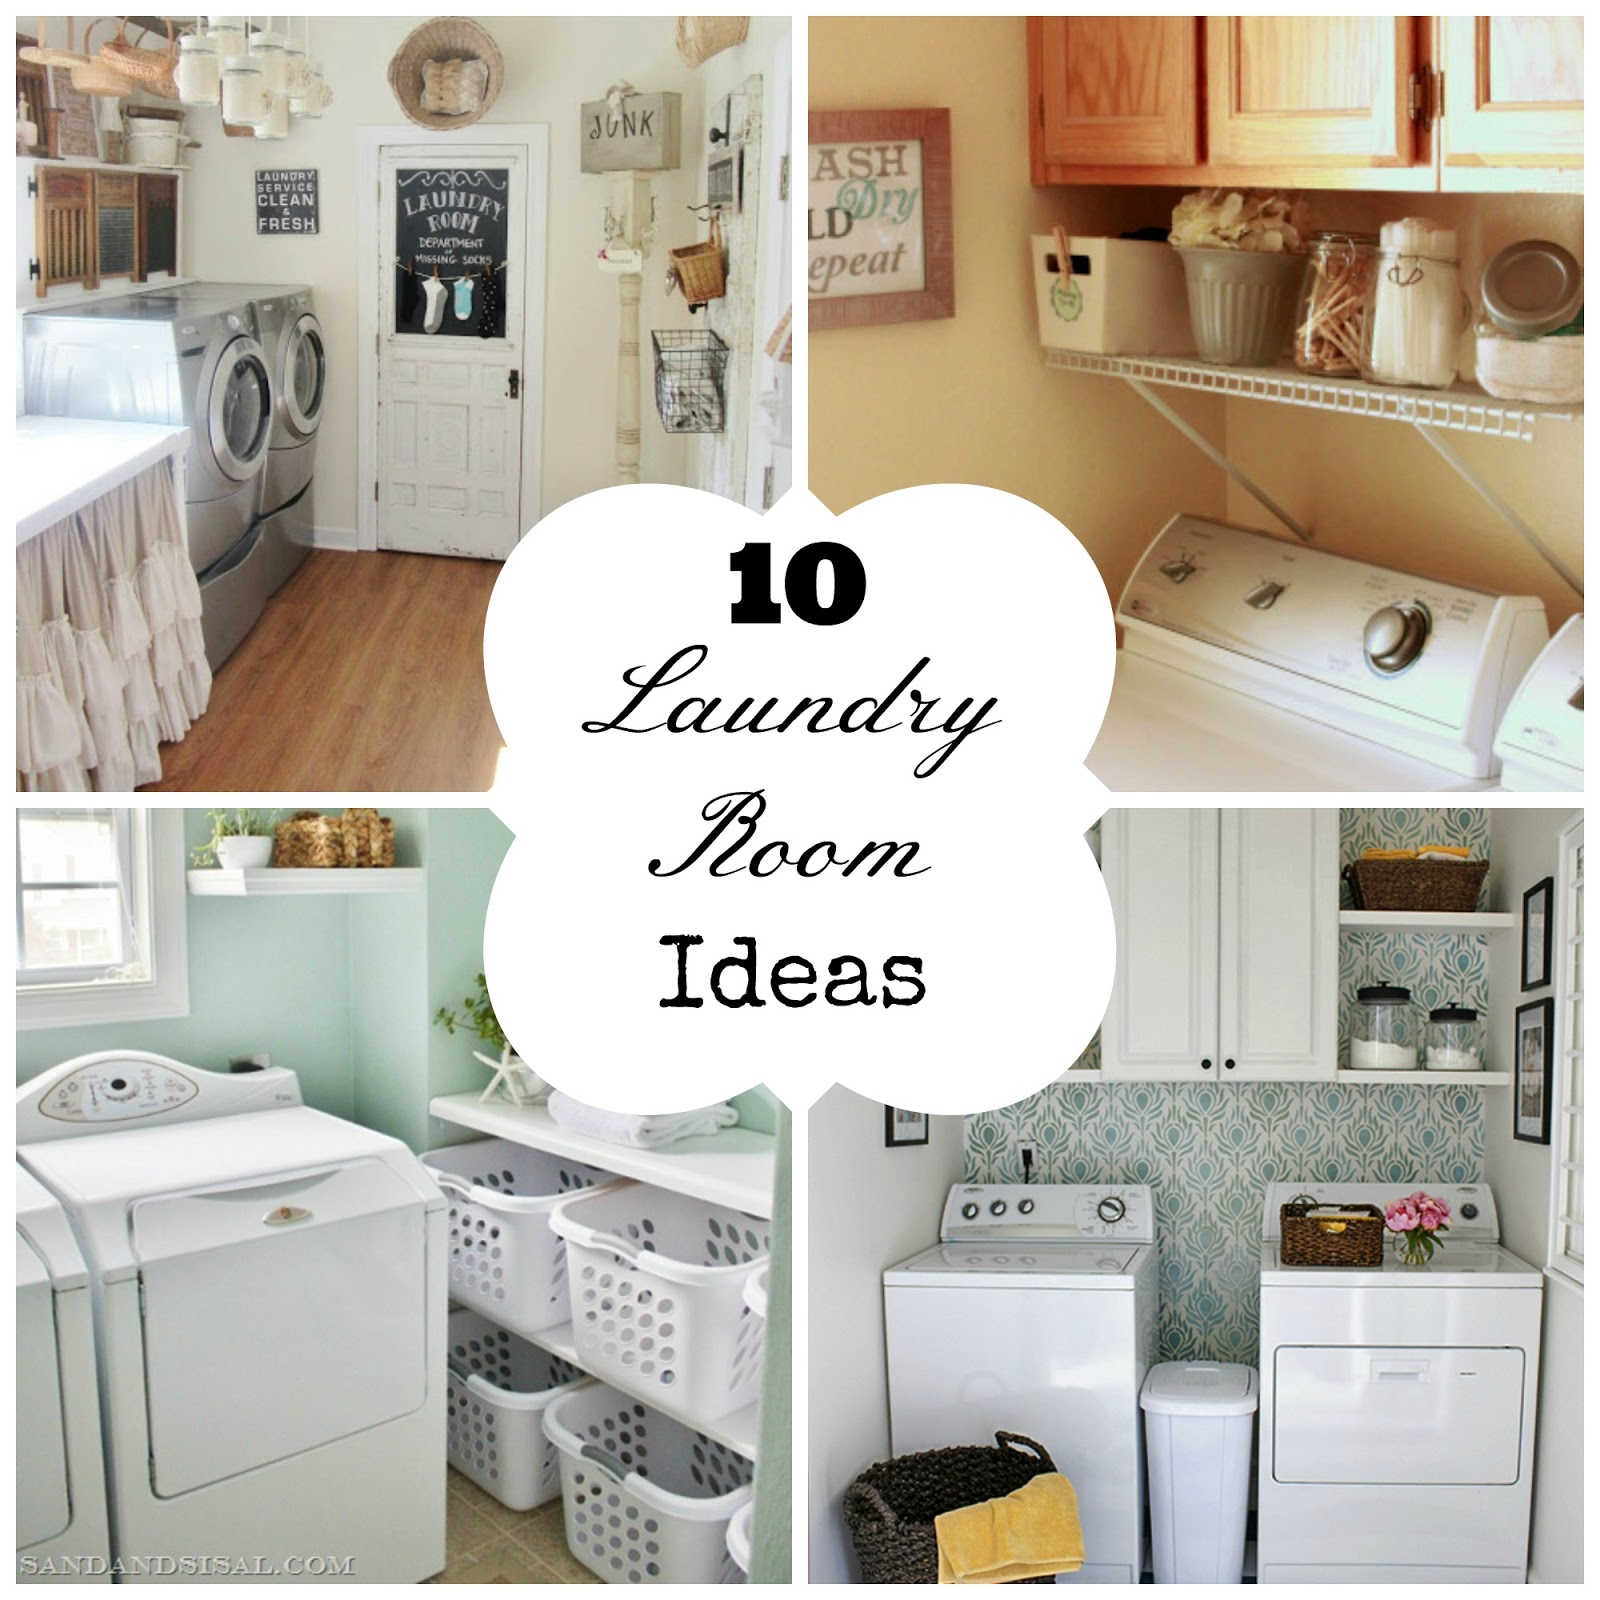 Utility Room Design Ideas victoria does laundry Inspirations Luxury Laundry Room Small Space Laundry Room Decorating Ideas